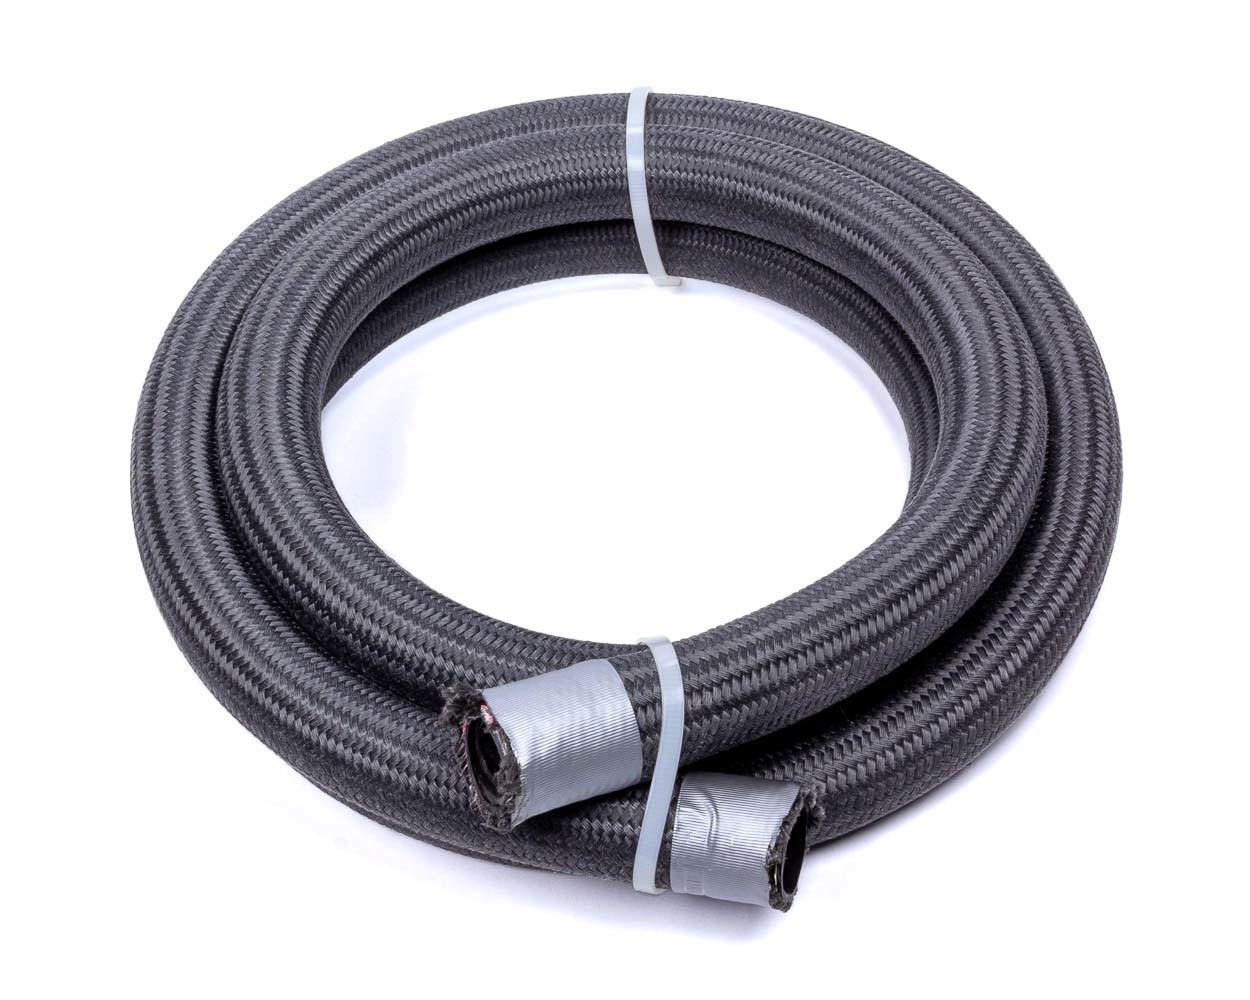 Fragola 2712012 Hose, Race-Rite Pro, 12 AN, 20 ft, Braided Fire Retardant Fabric, Wire Reinforced, PTFE, Black, Each